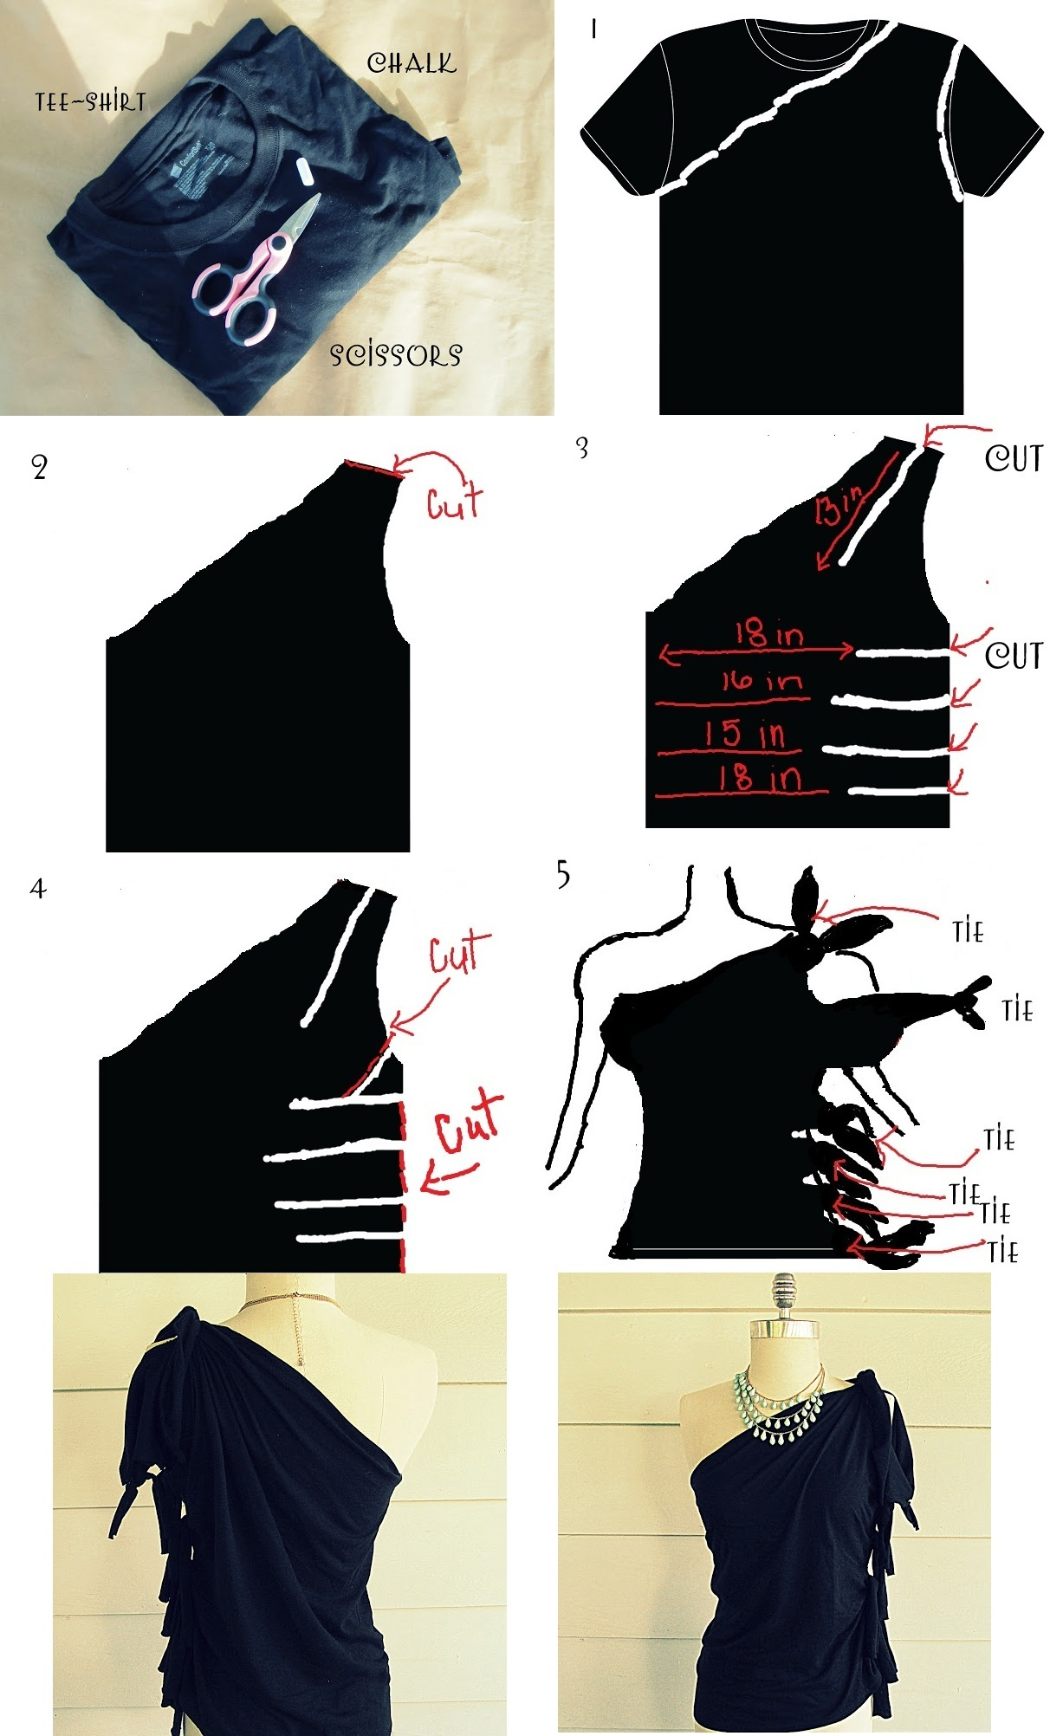 T Shirt Cutting Designs Ideas how to cut a t shirt into a crop top diy tutorial Find This Pin And More On Nhen Diy